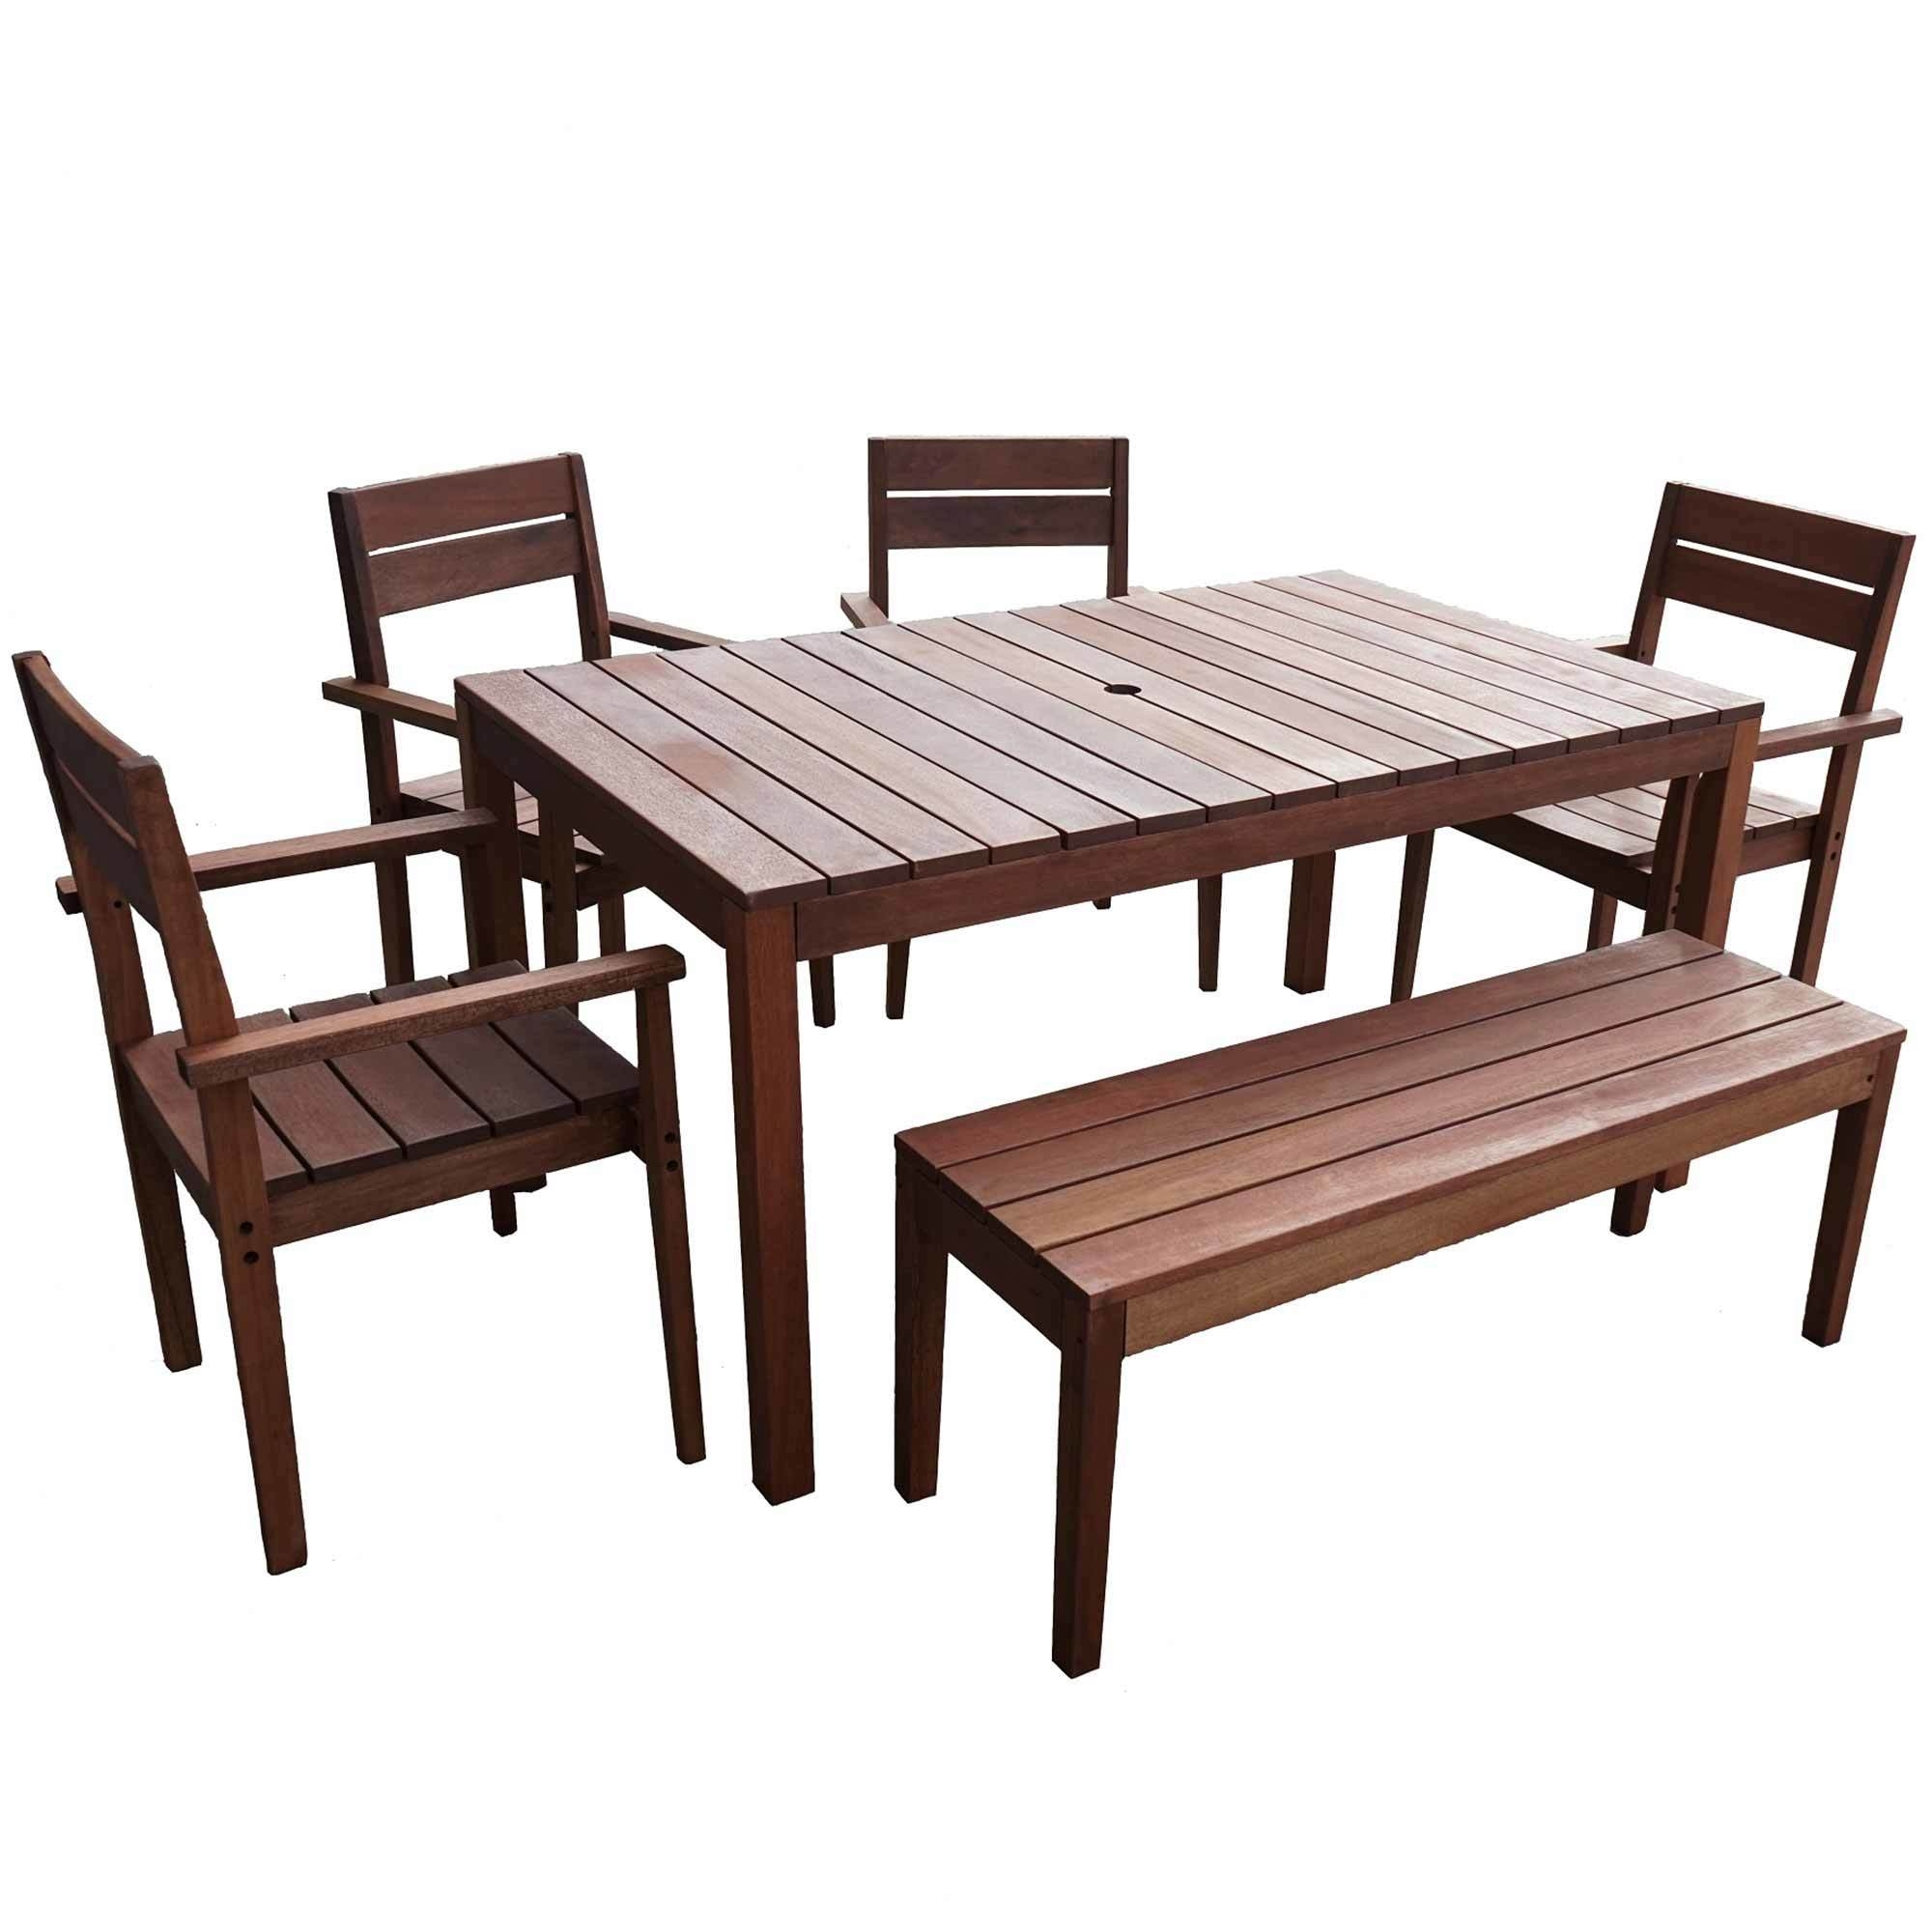 Widely Used 8 Seat Outdoor Dining Tables With 6 Seater Outdoor Dining Table Set I (View 21 of 25)